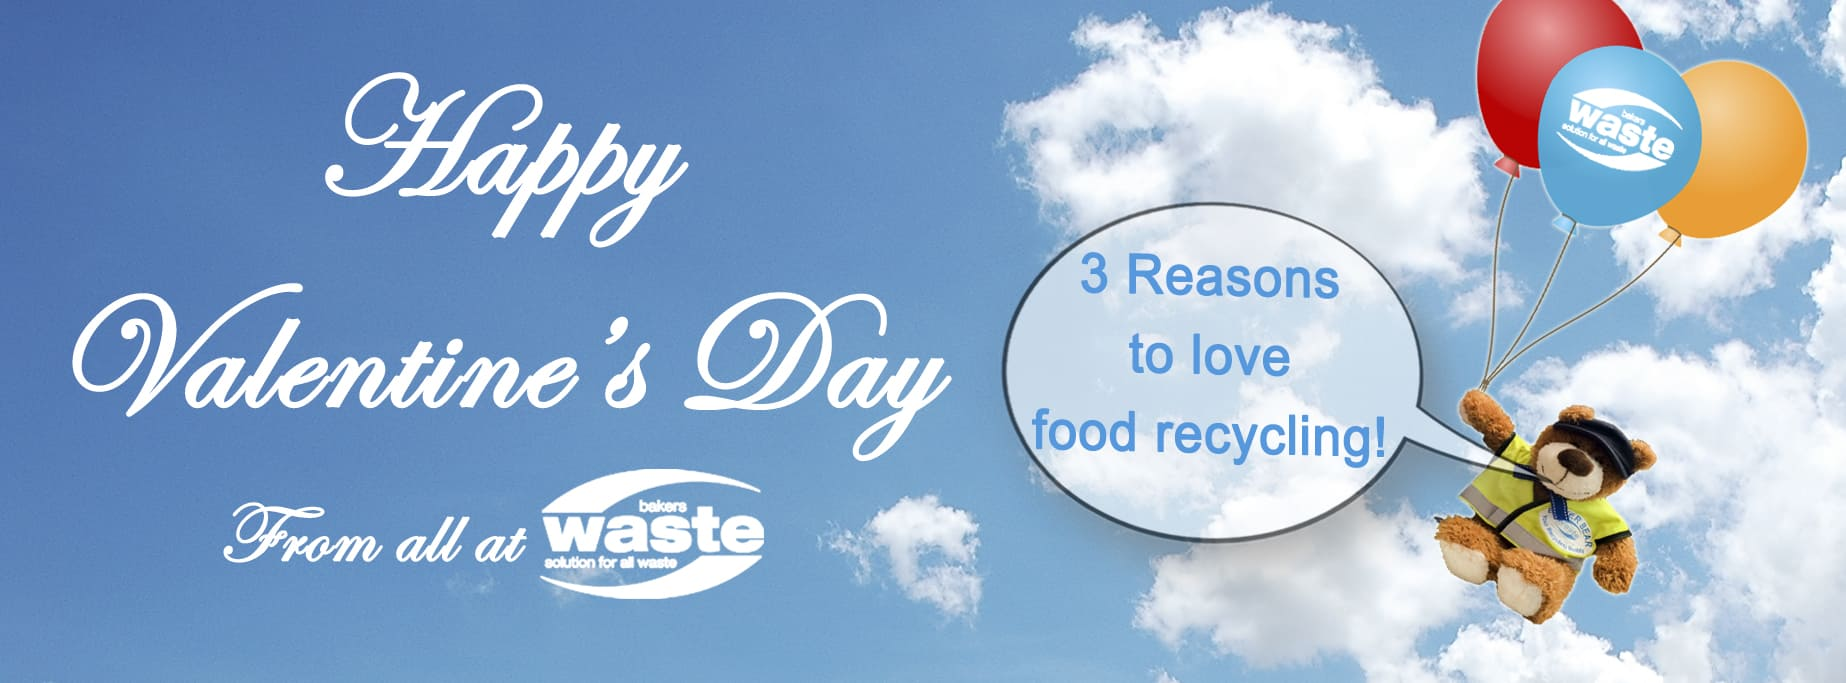 Valentine's Day 2017 - Love Food Recycling